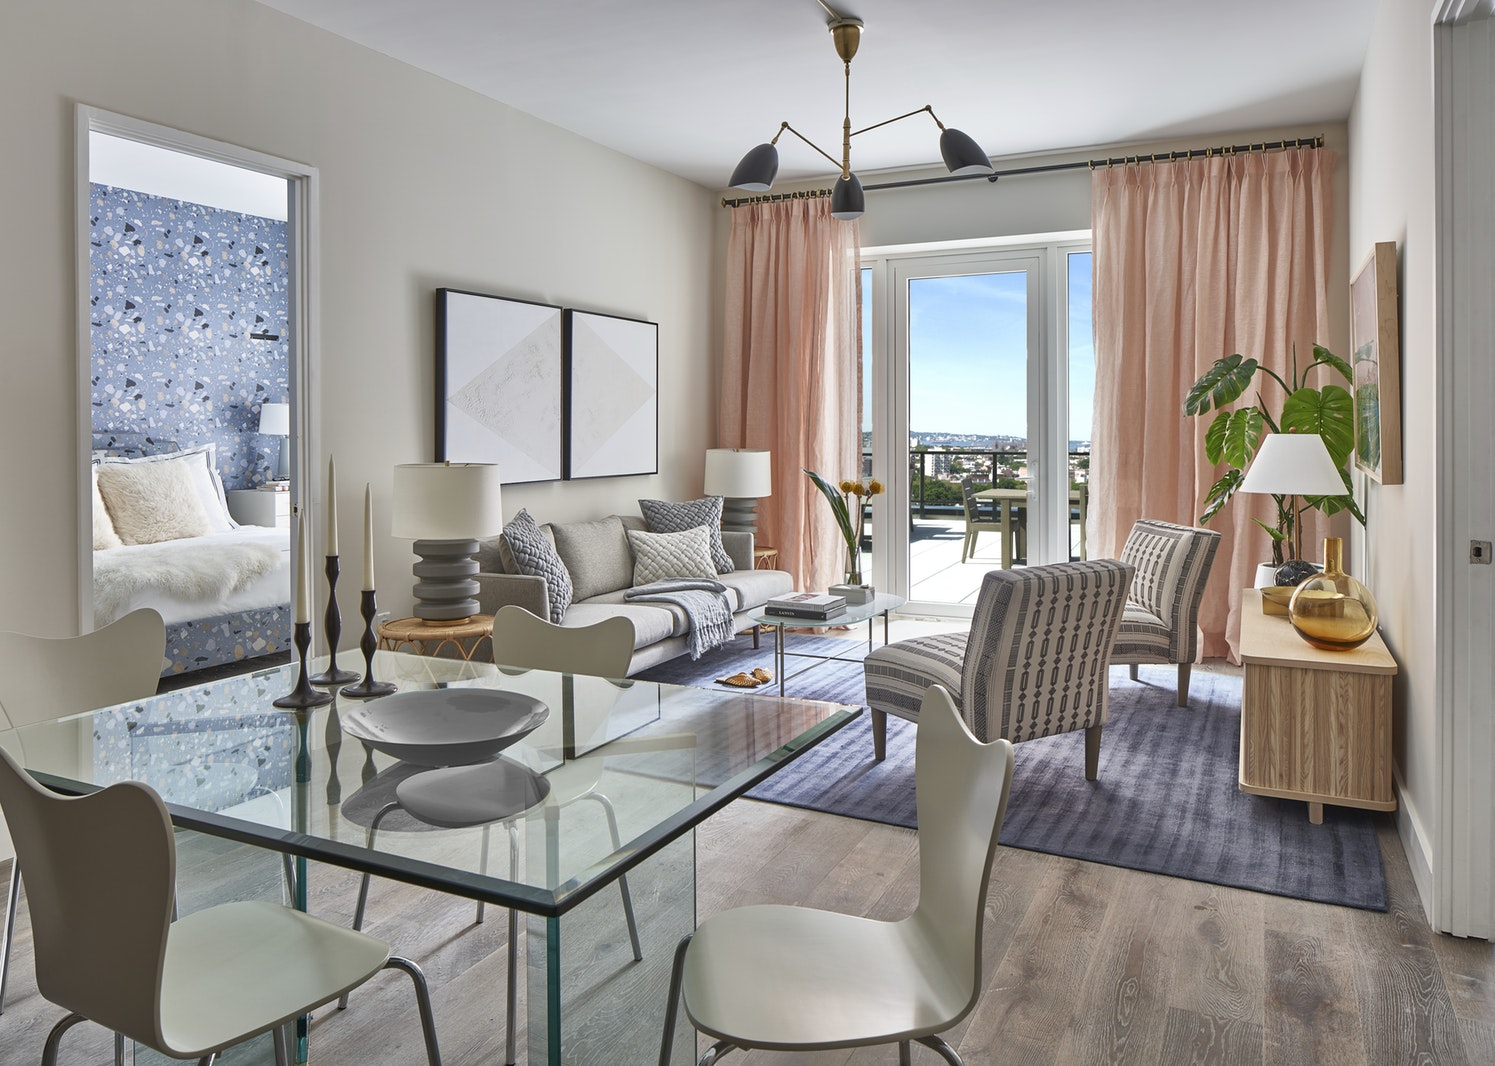 10 Nevins Street Phi, Downtown Brooklyn, Brooklyn, NY, 11217, $2,550,000, Property For Sale, Halstead Real Estate, Photo 1